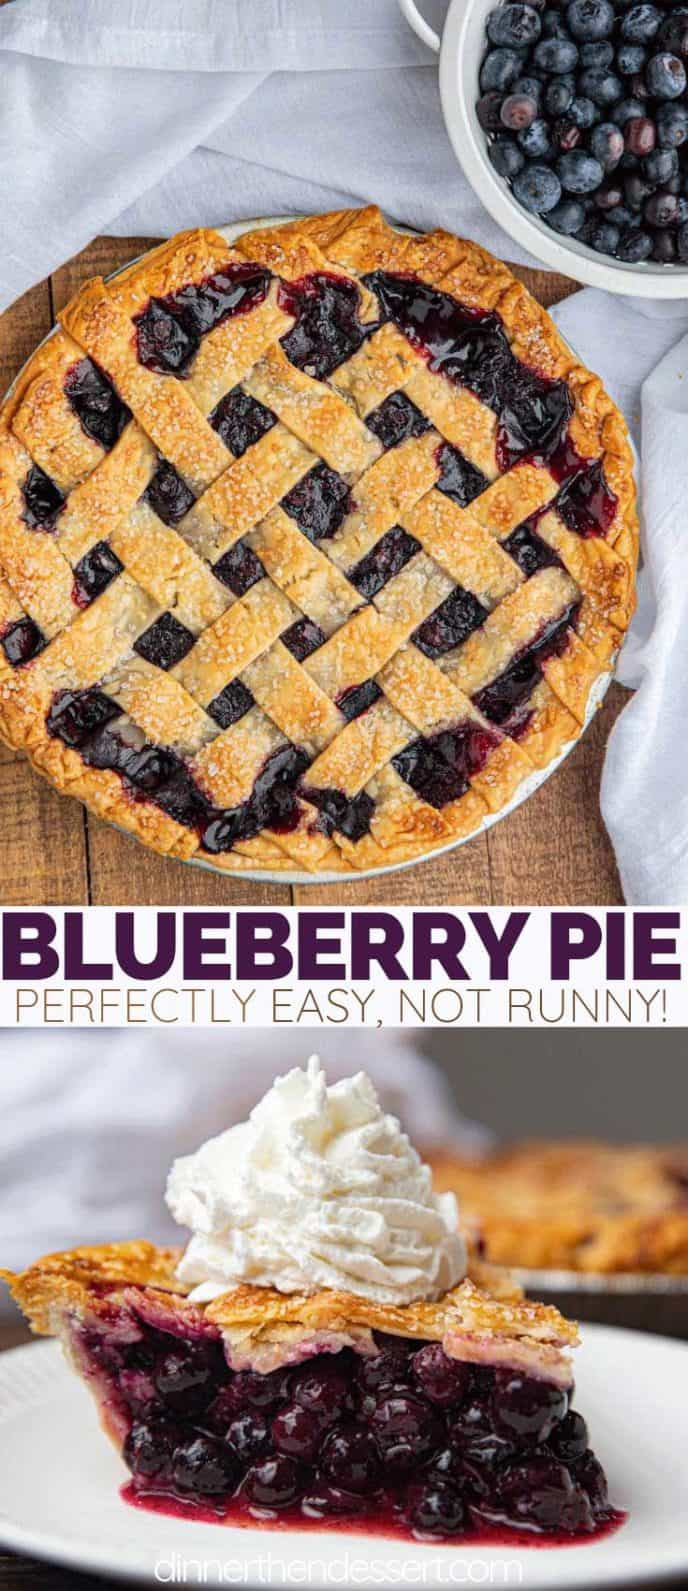 Collage of Blueberry Pie photos